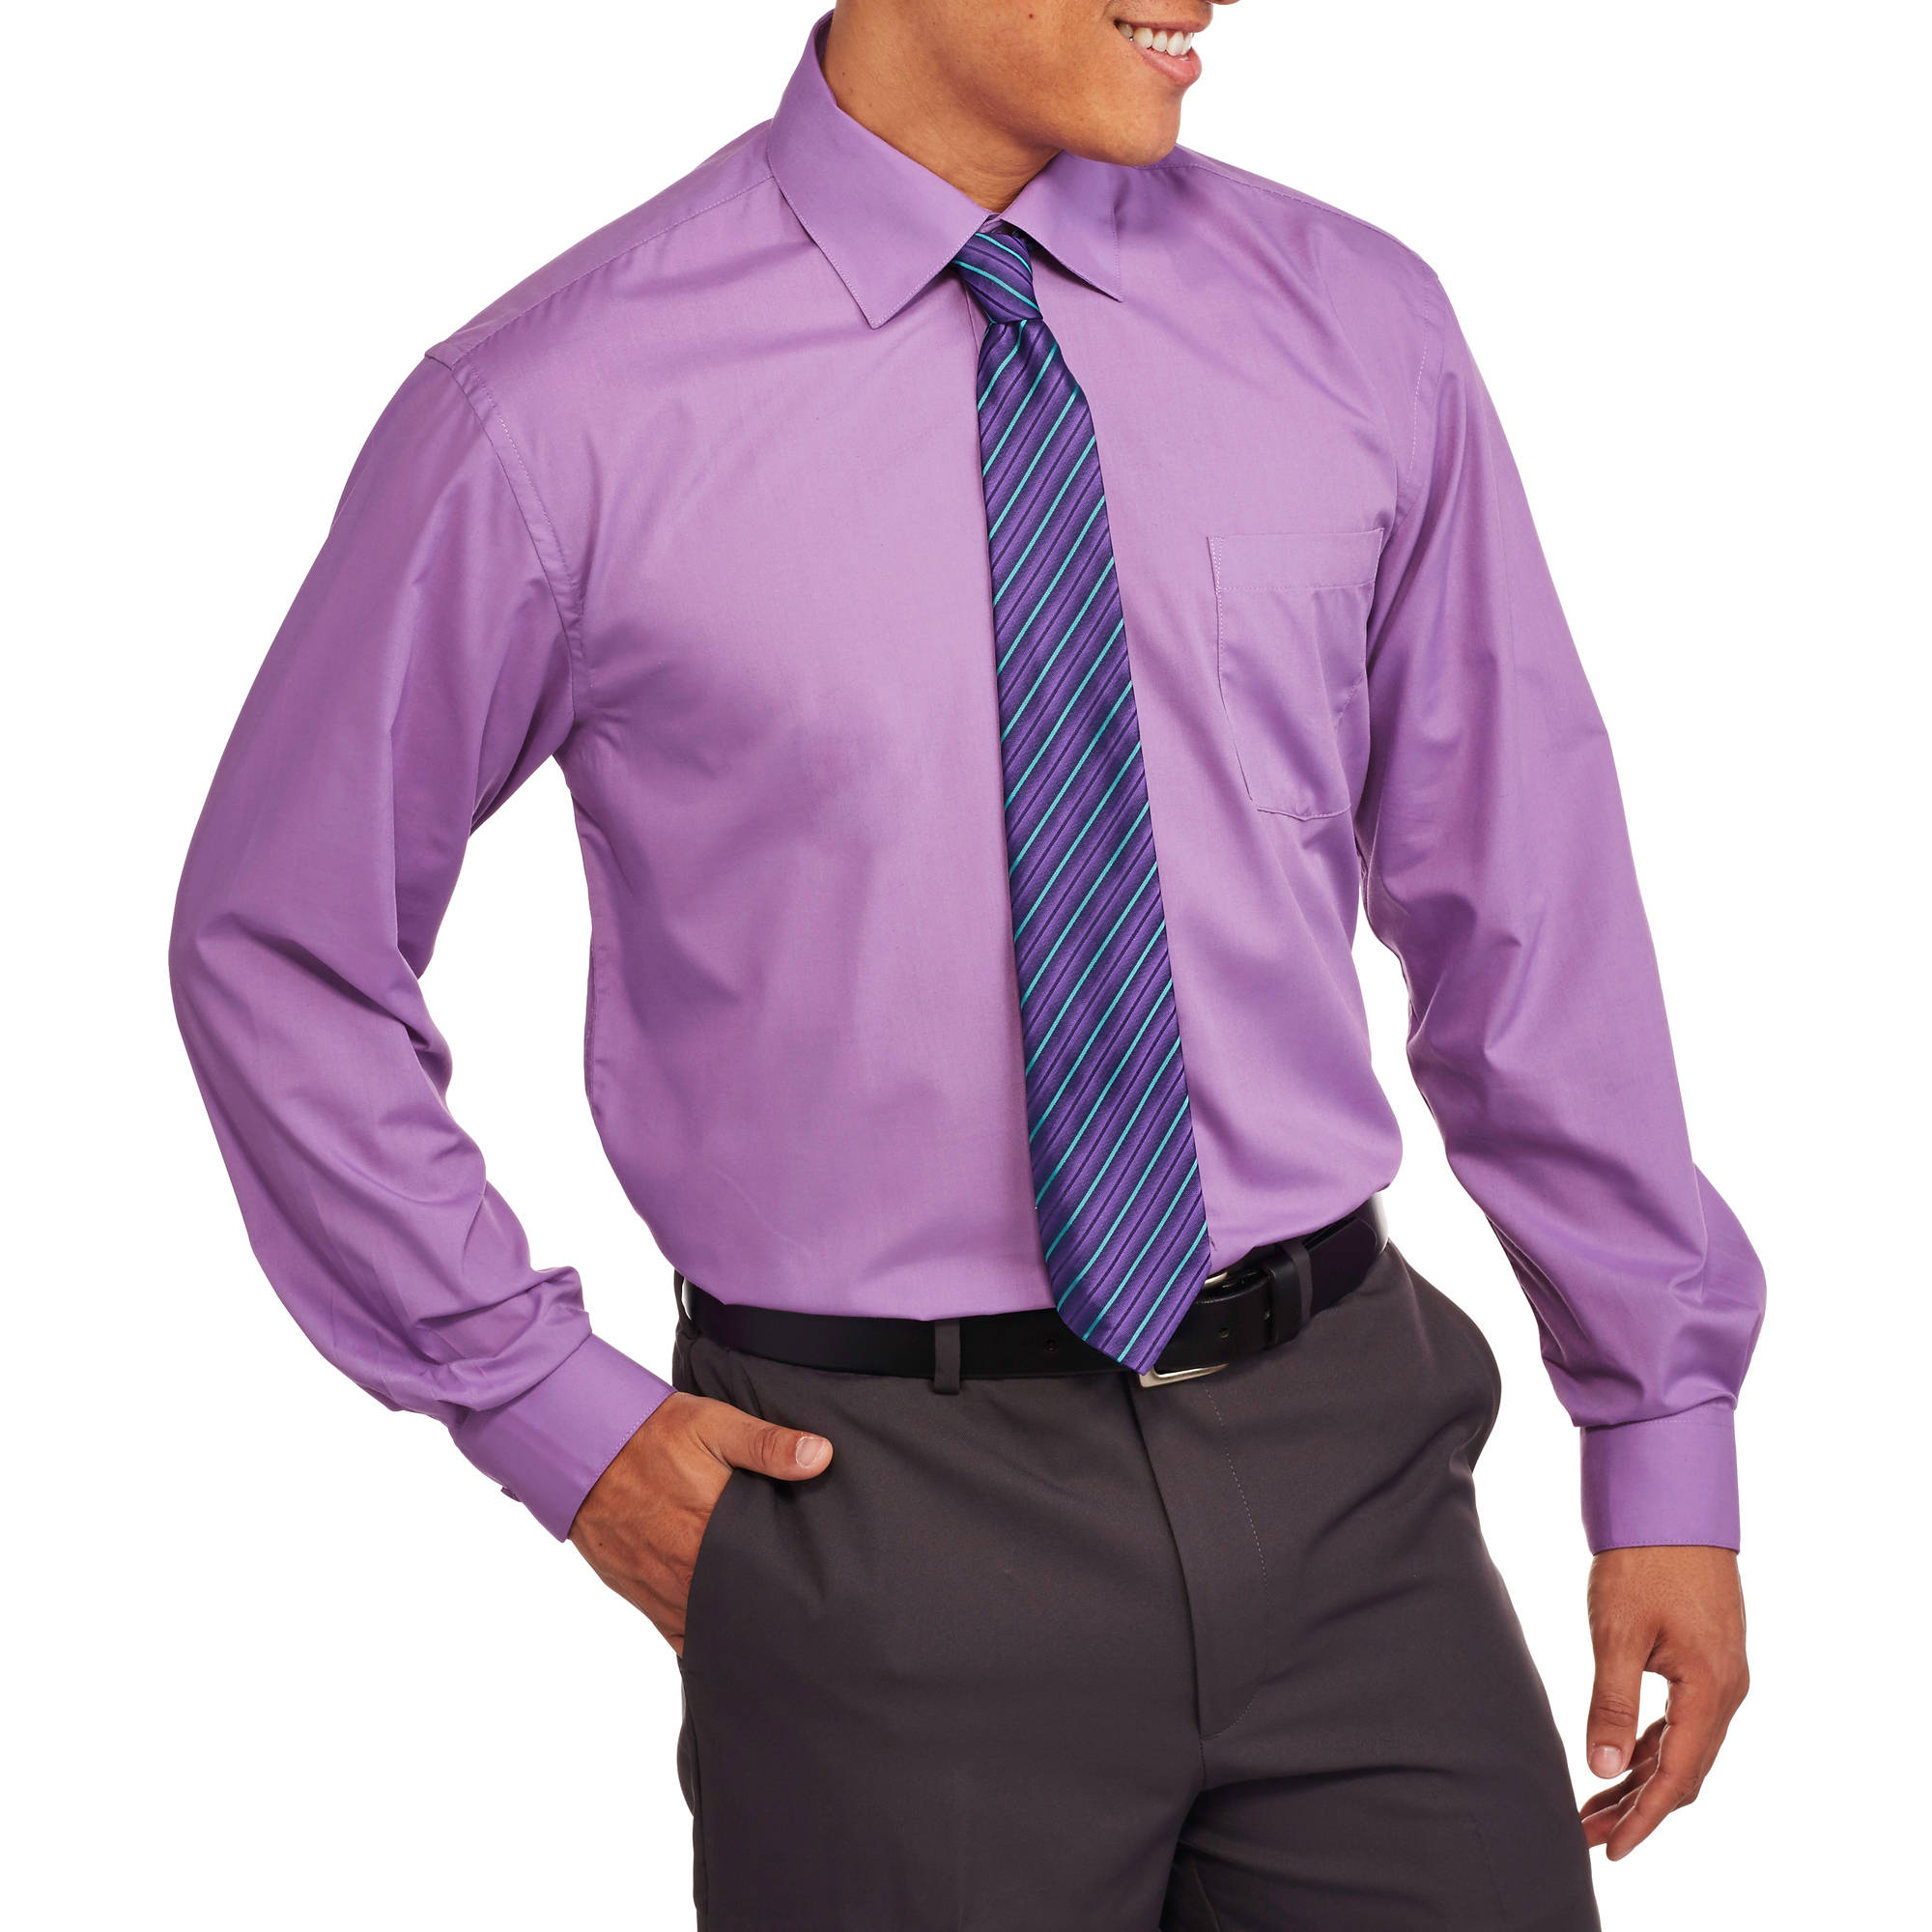 Big Men's 2-Piece Solid Dress Shirt and Tie Set